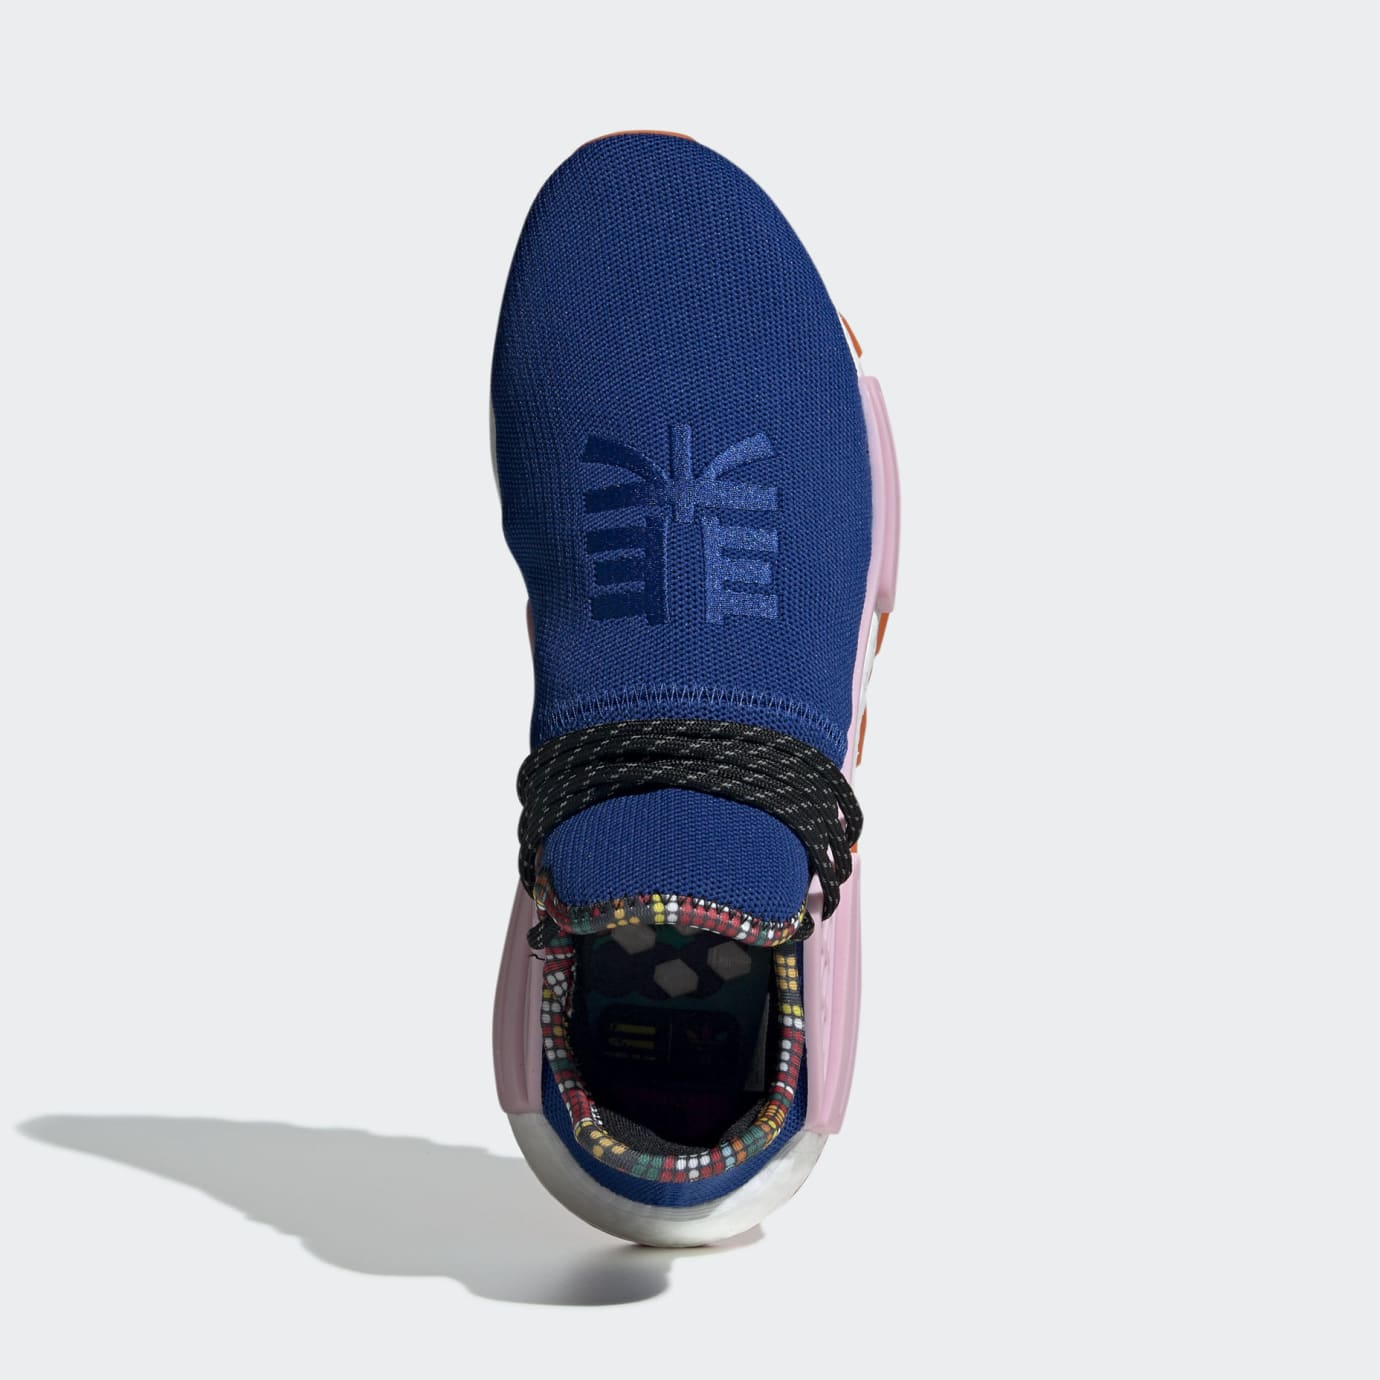 133684319 Pharrell Williams x Adidas NMD Hu  Inspiration  Pack Release Date ...